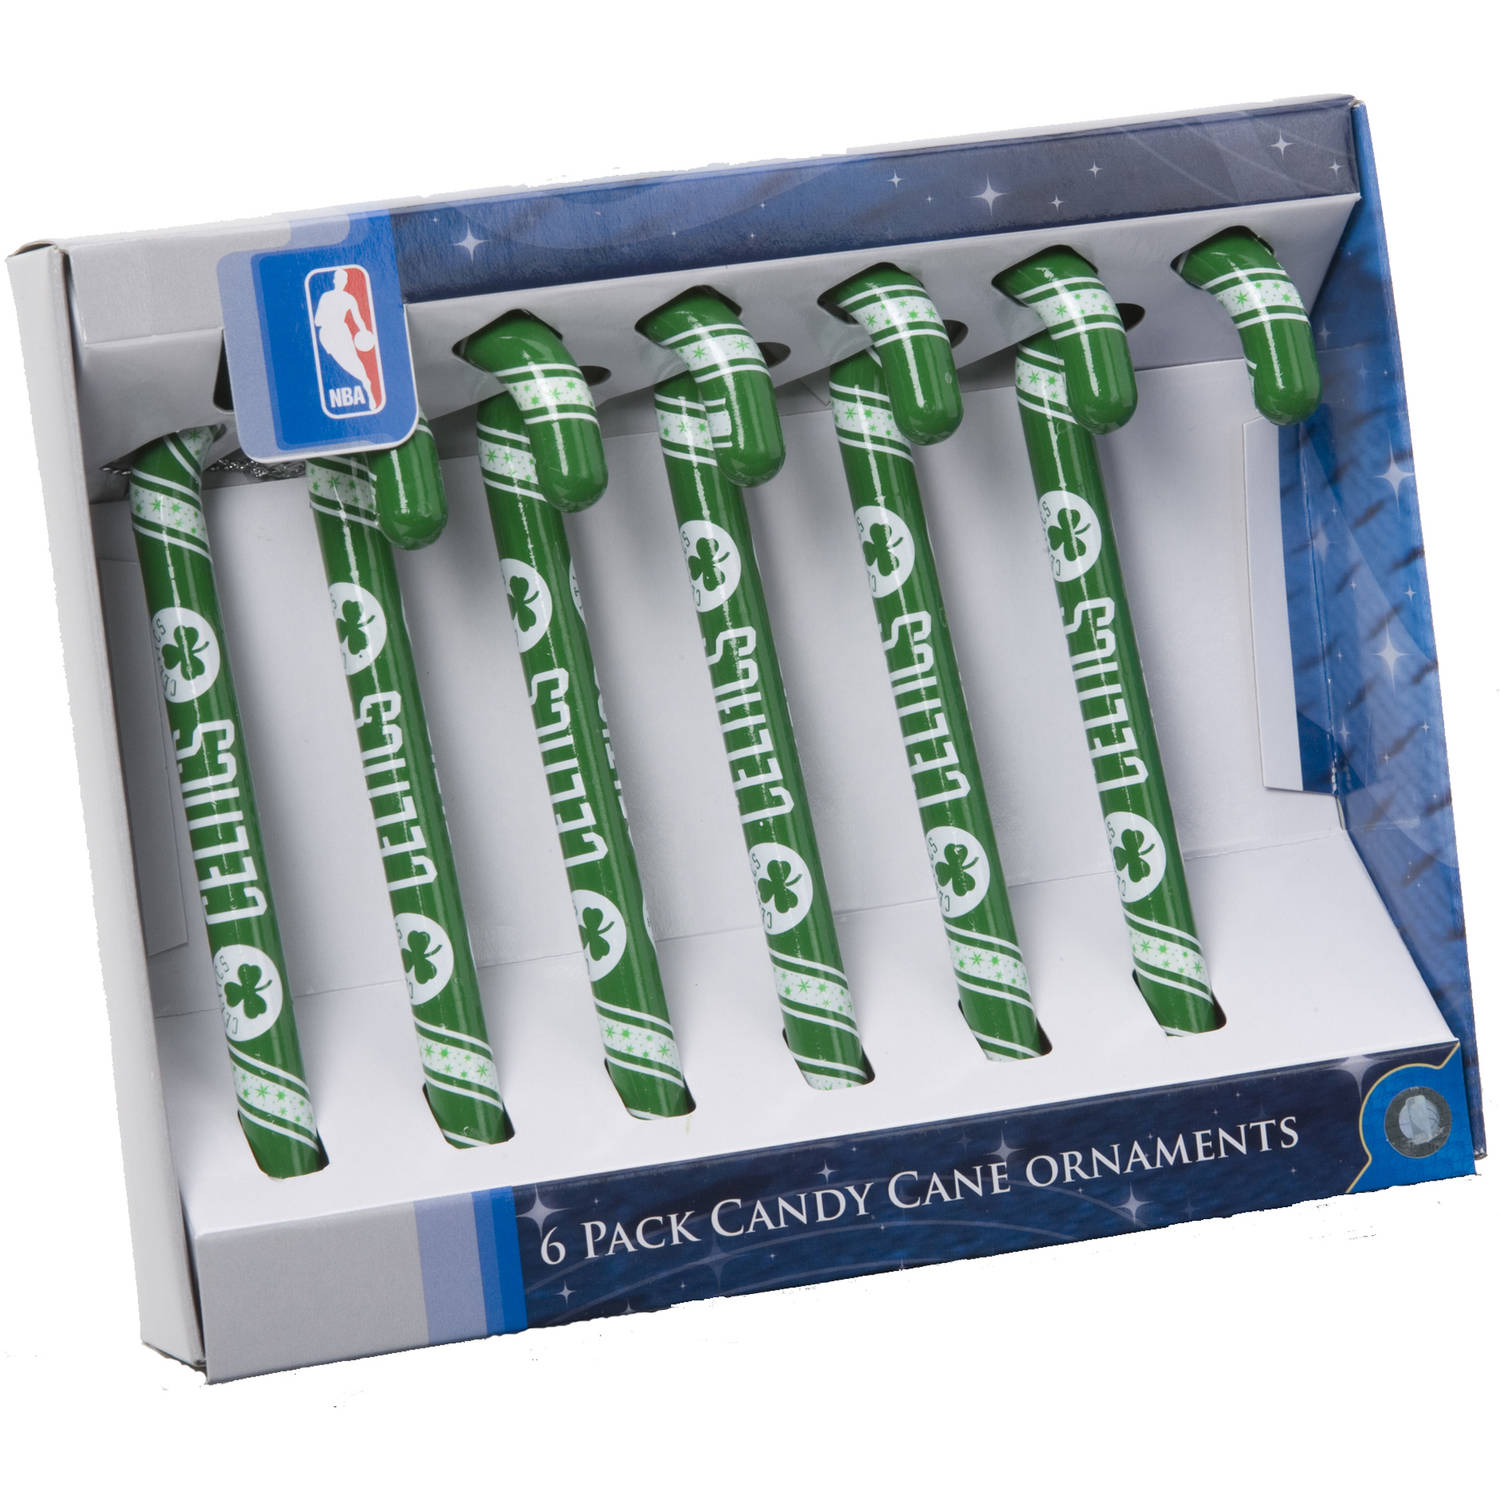 FOREVER COLLECTIBLES 6 PACK CANDY CANE STYLE ORNAMENTS NOT CANDY